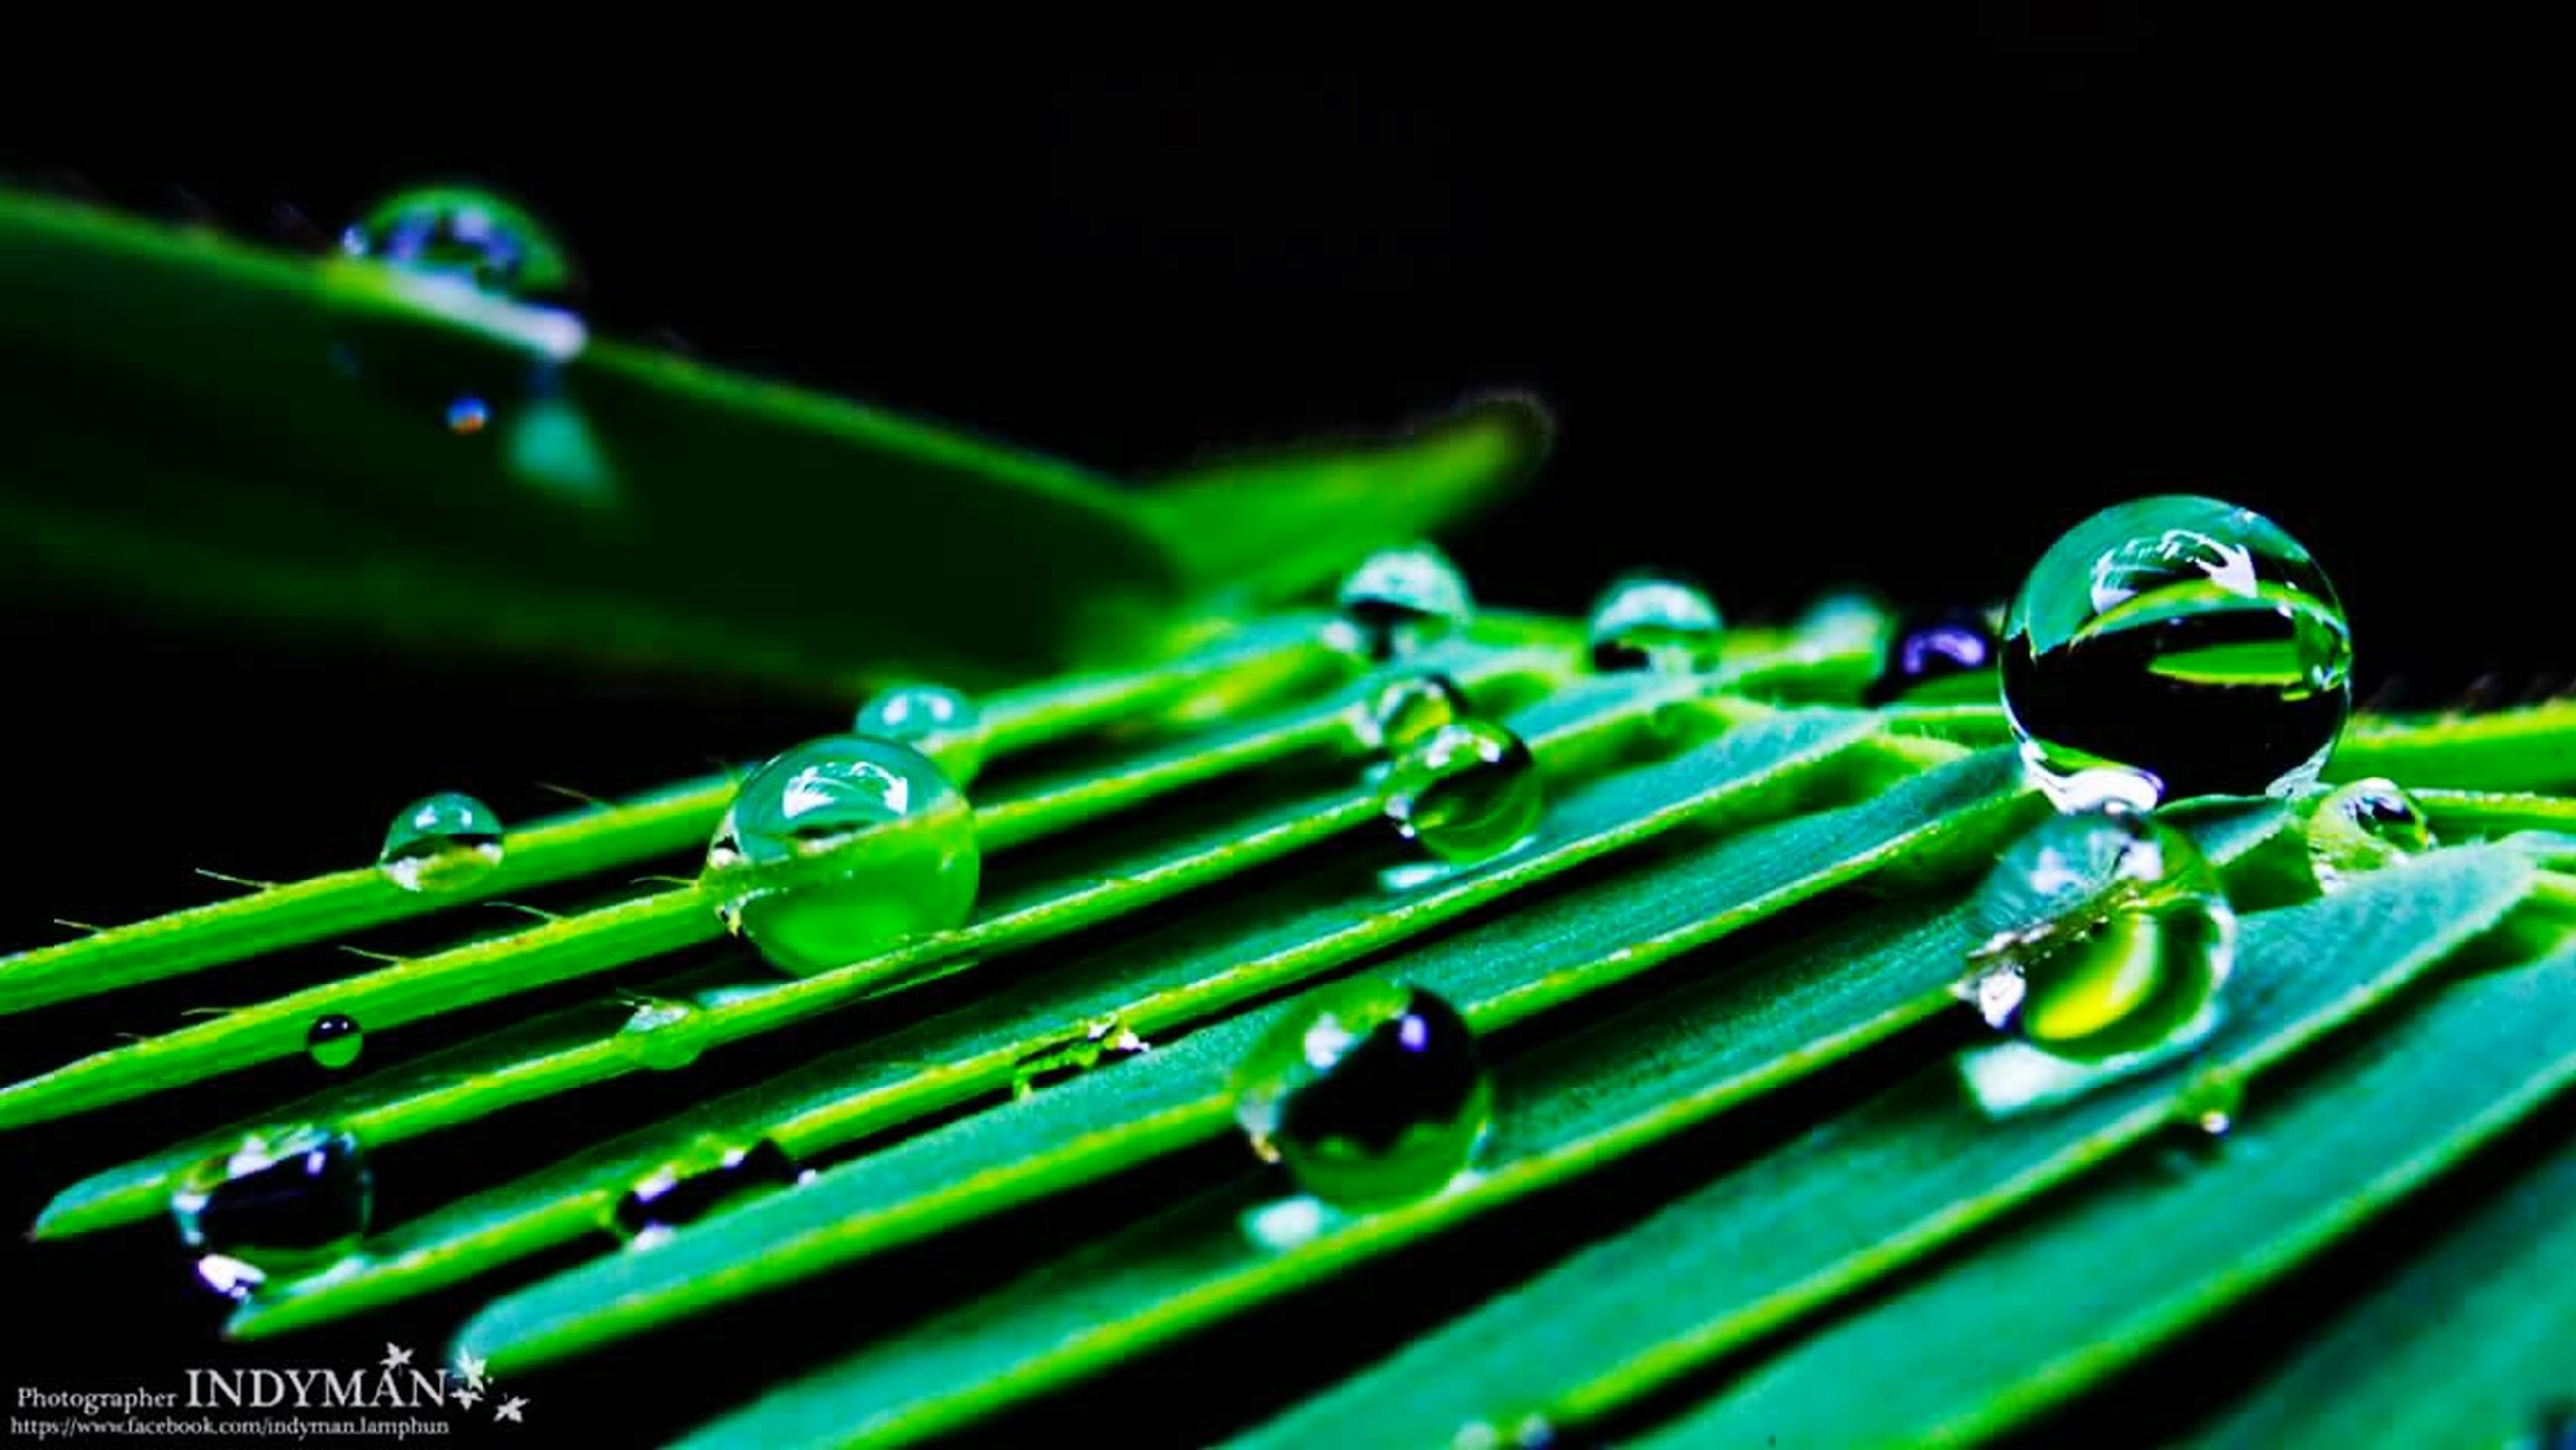 green color, drop, water, close-up, selective focus, wet, focus on foreground, no people, outdoors, animal themes, green, day, full frame, blue, nature, in a row, backgrounds, metal, detail, shiny